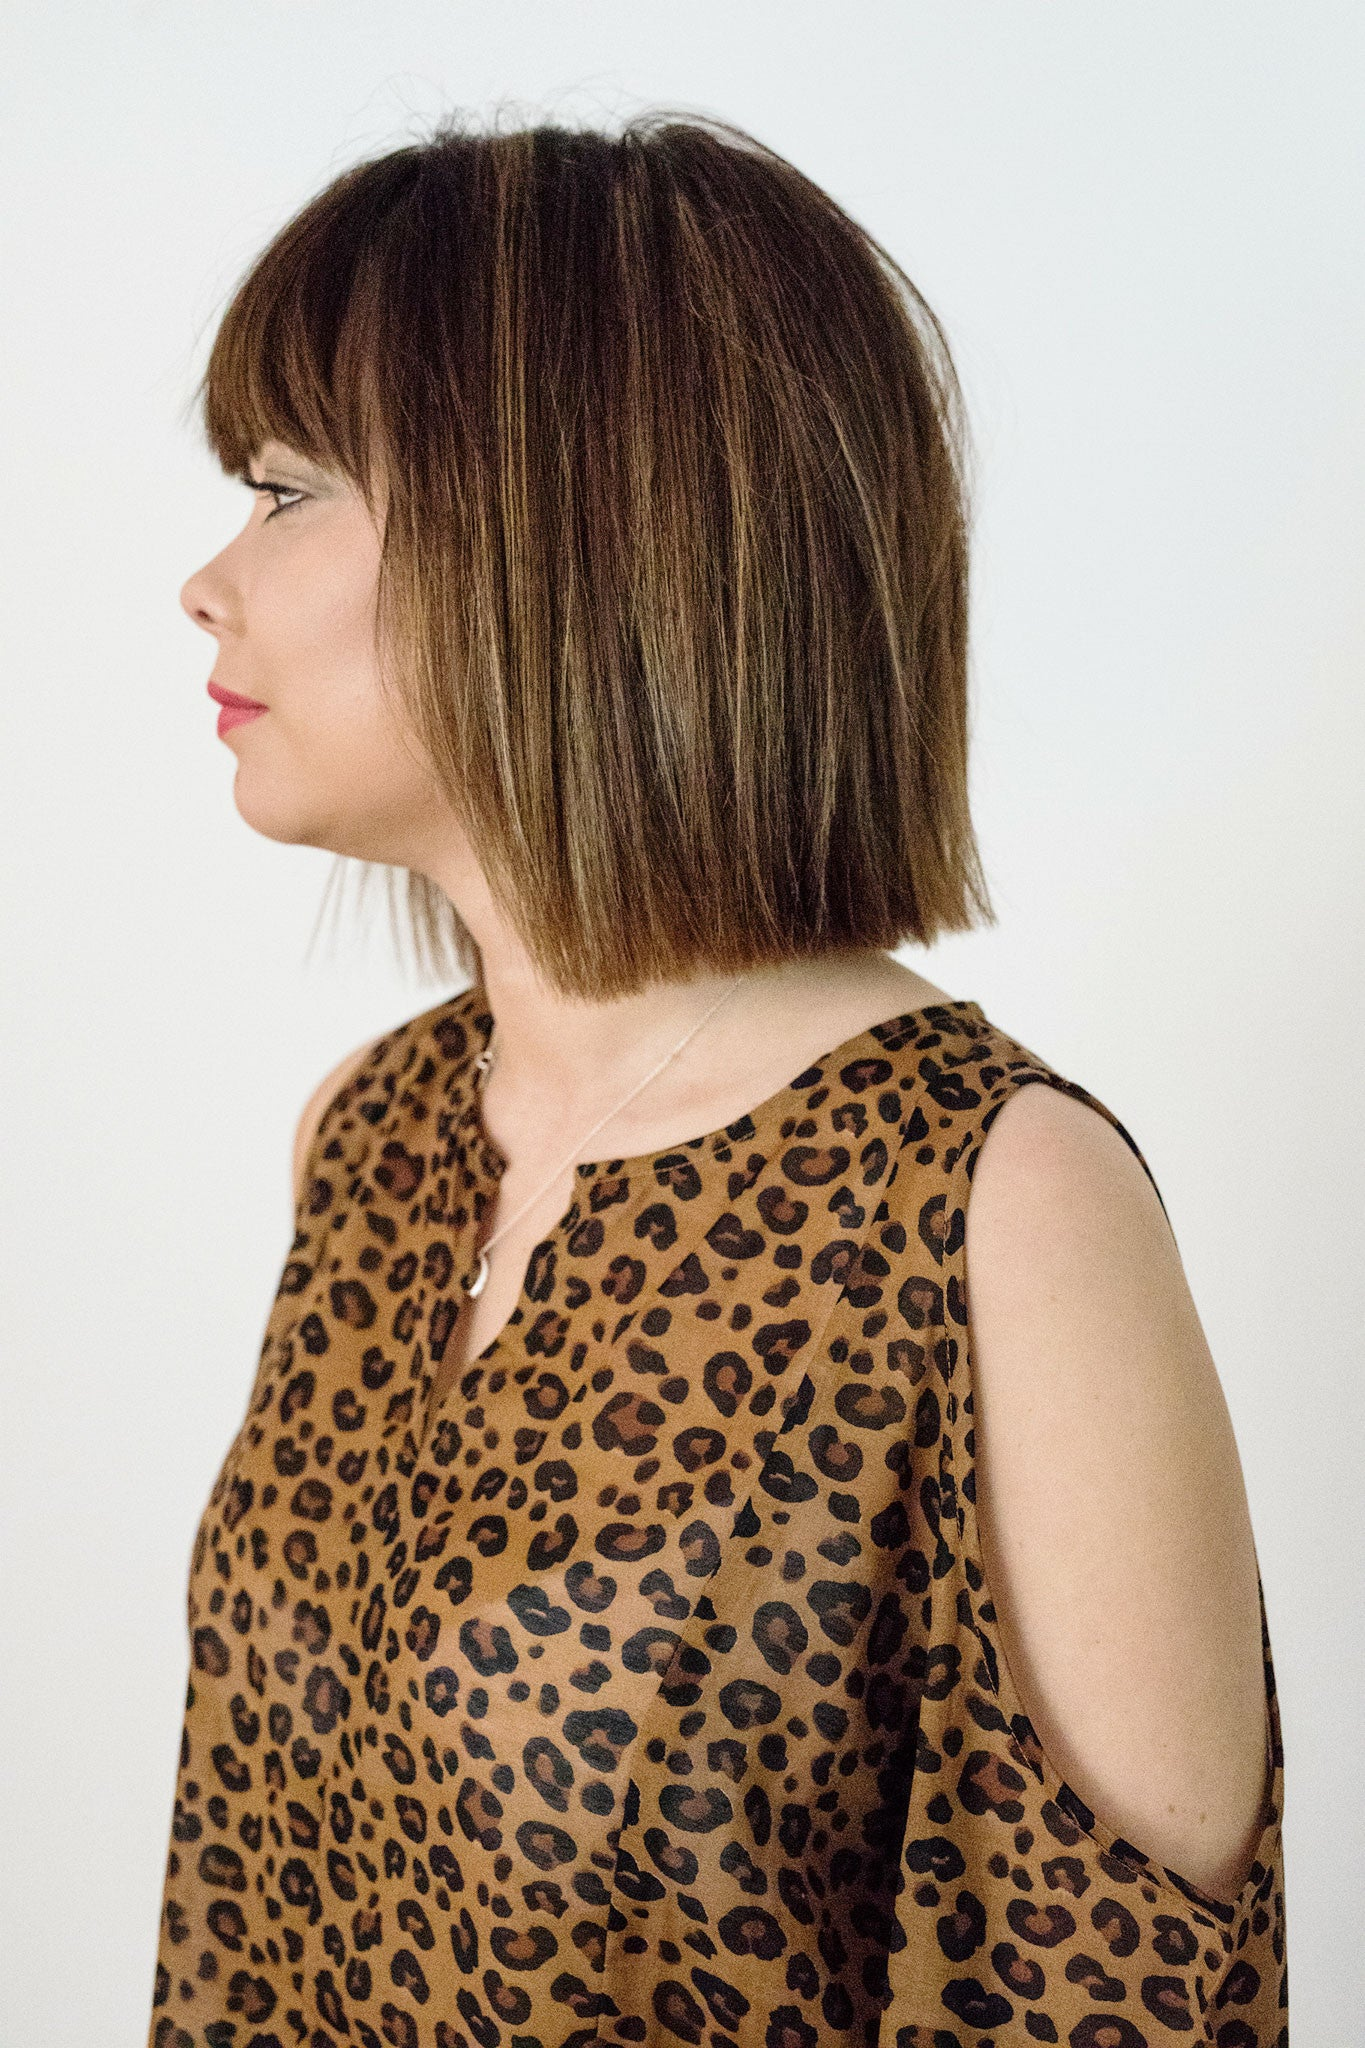 Sketch London Fashion Leopard print cut out shoulder top ethical sustainable british brand